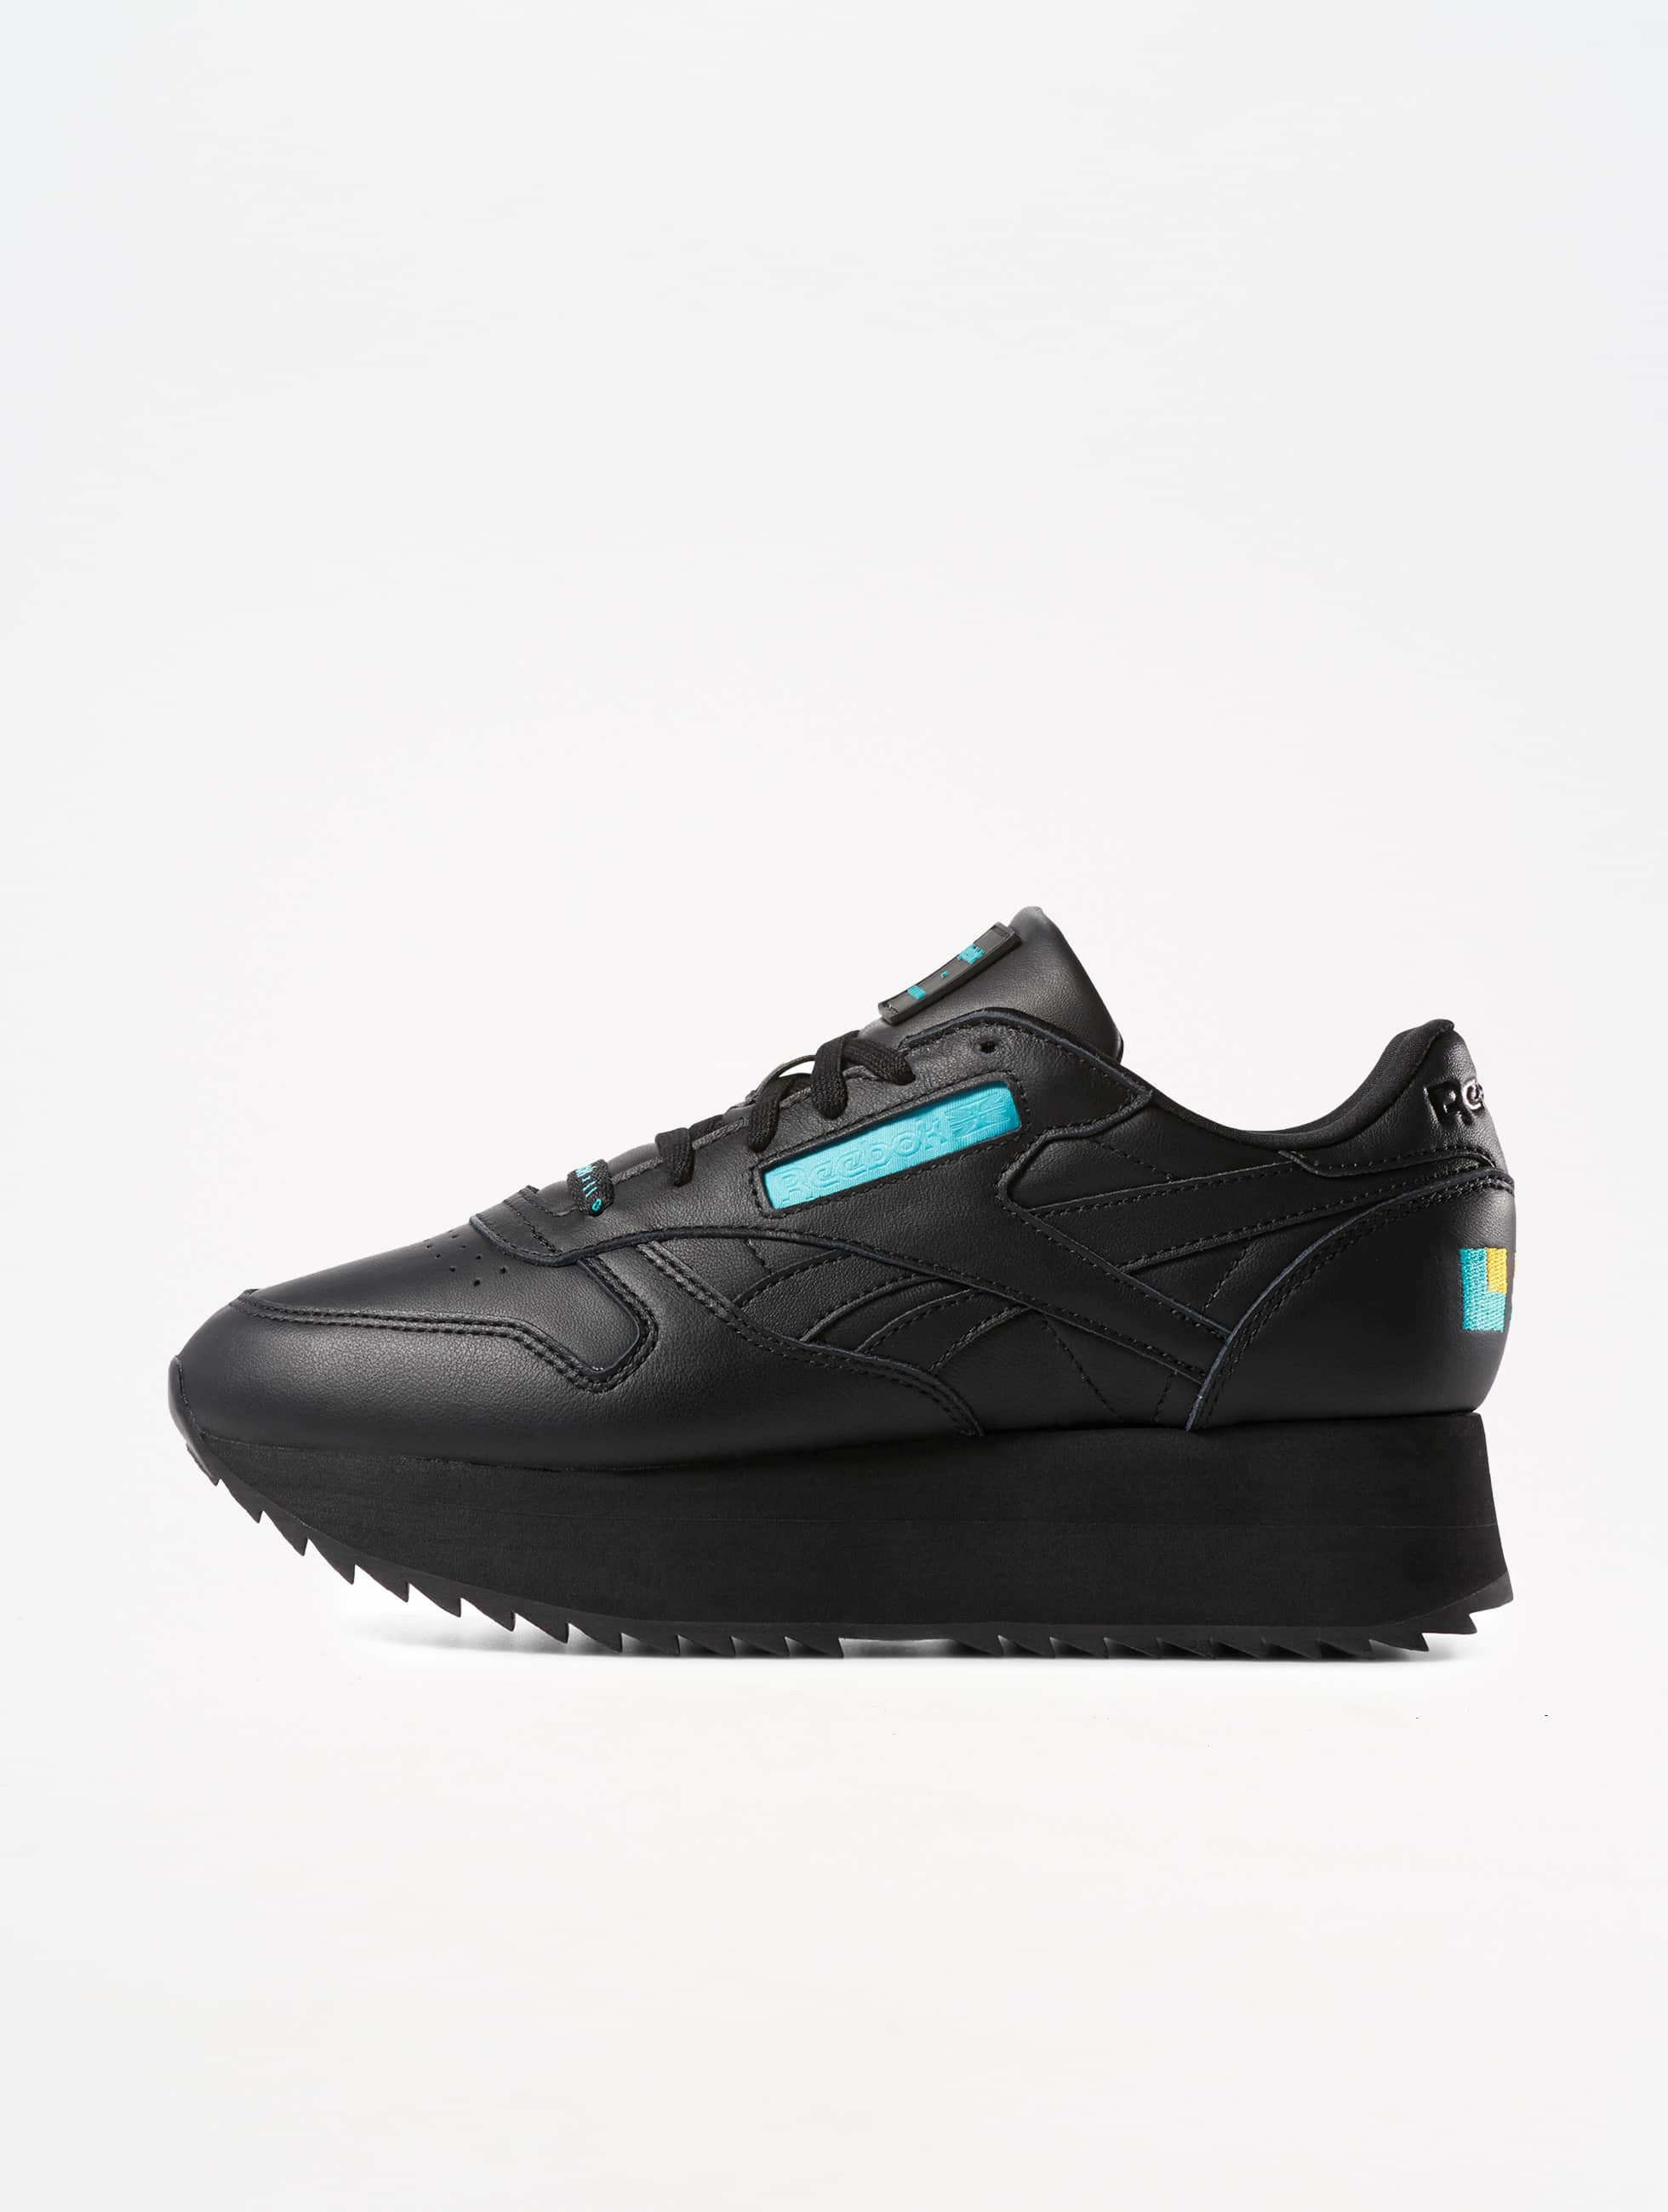 6813ed9cc7ca Reebok | Classic Leather Double noir Femme Baskets 576236